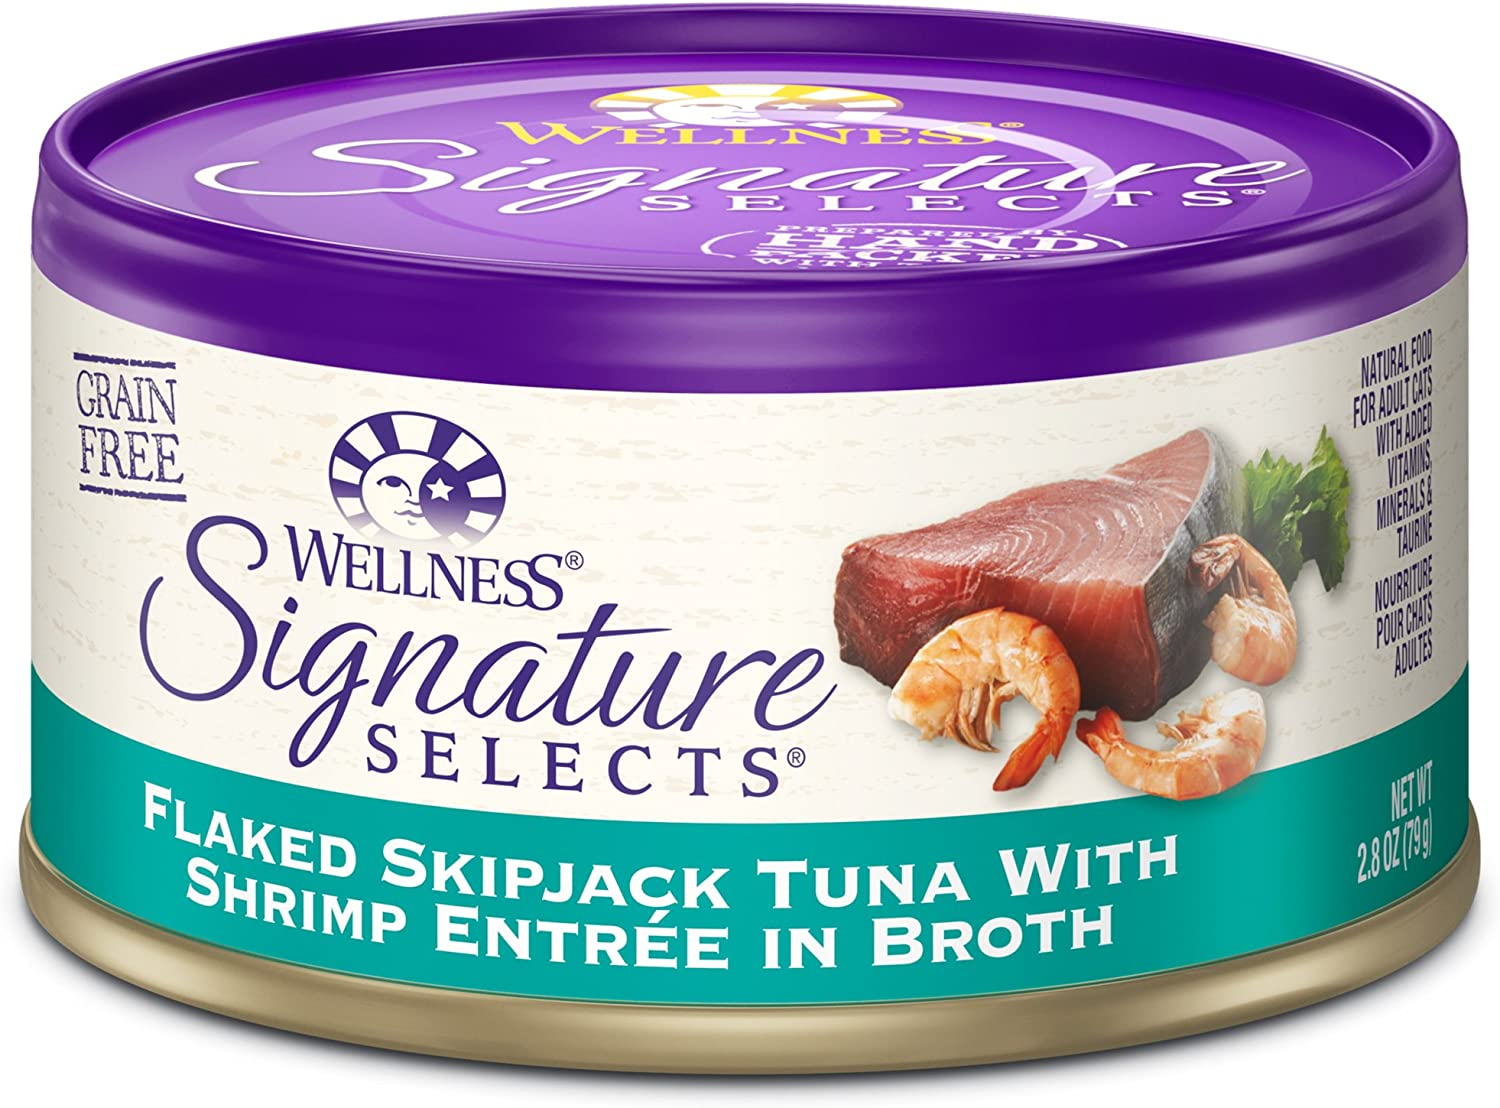 Wellness Core Signature Selects Natural Canned Grain Free Wet Cat Food Flaked Skipjack Tuna & Shrimp